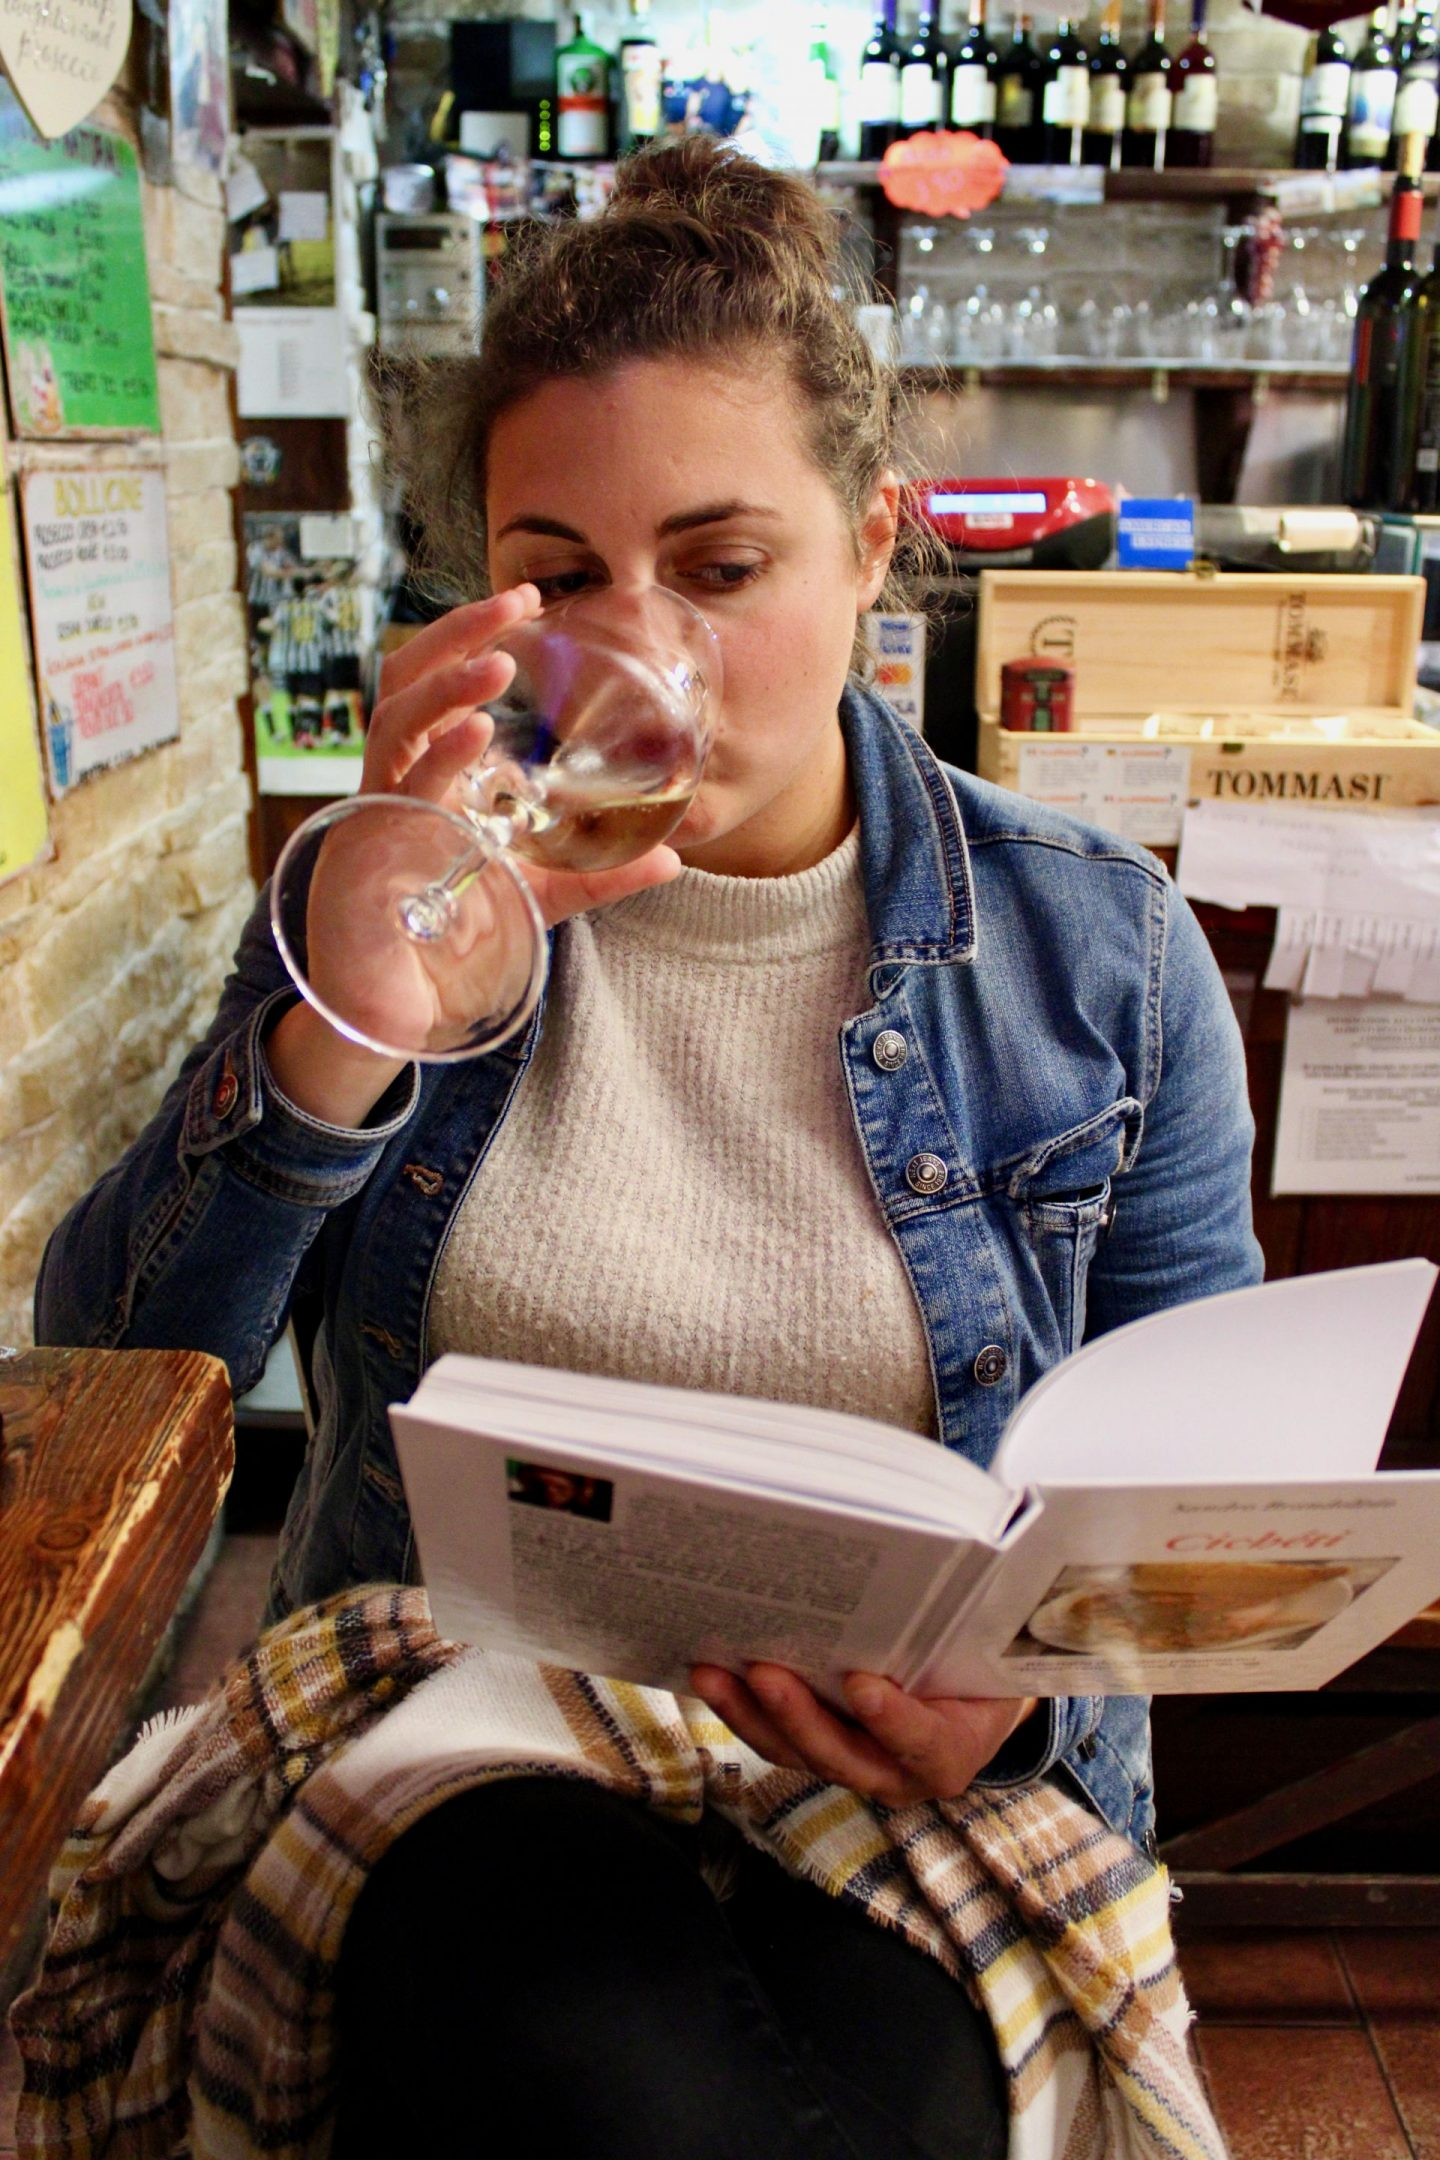 Nell drinking a glass of wine at a cicchetti bar in Venice whilst reading a book about cicchetti